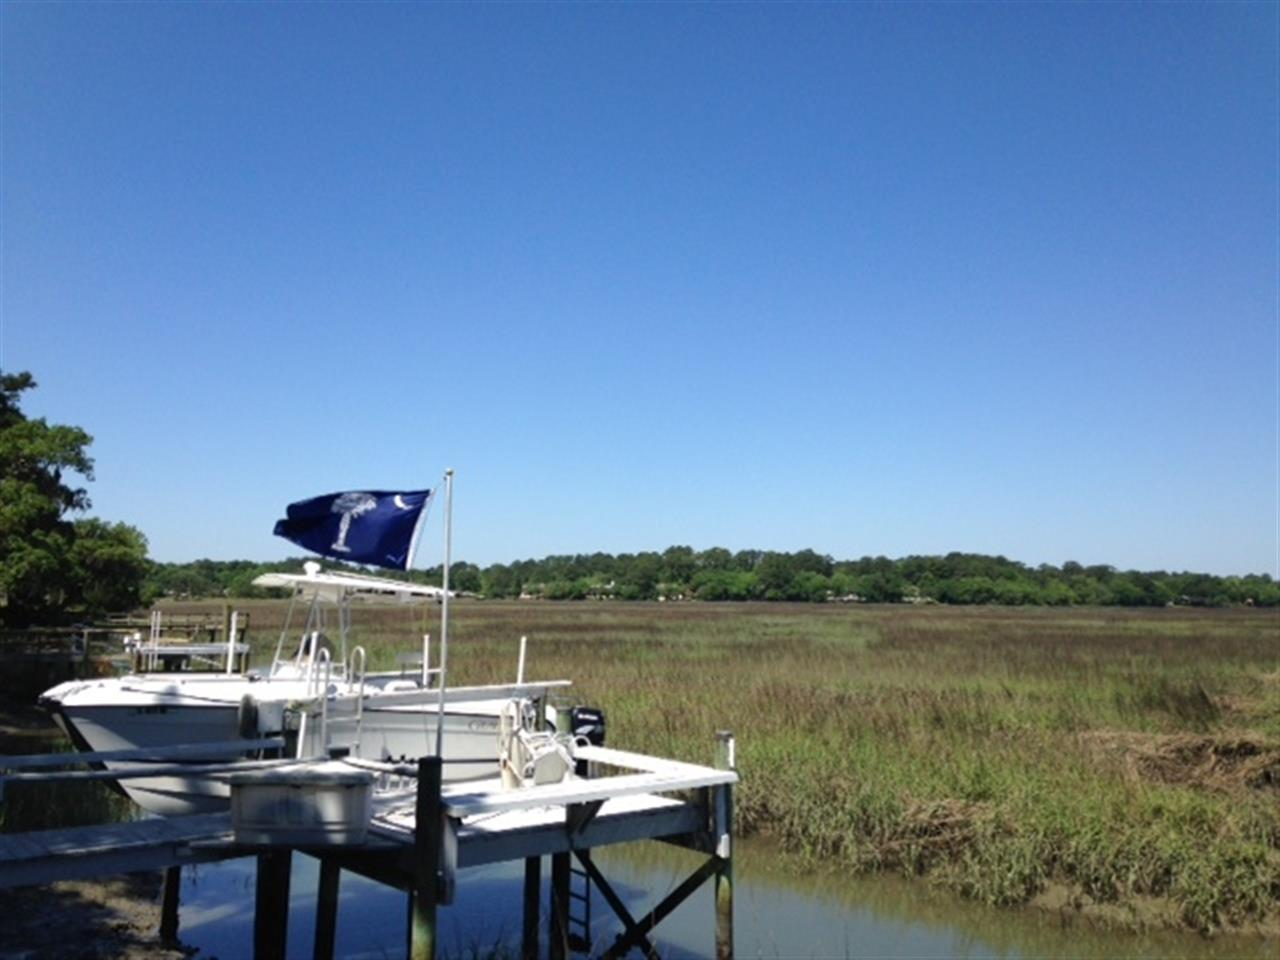 Moss Creek Plantation Hilton Head Island SC, beautiful day to take out your boat